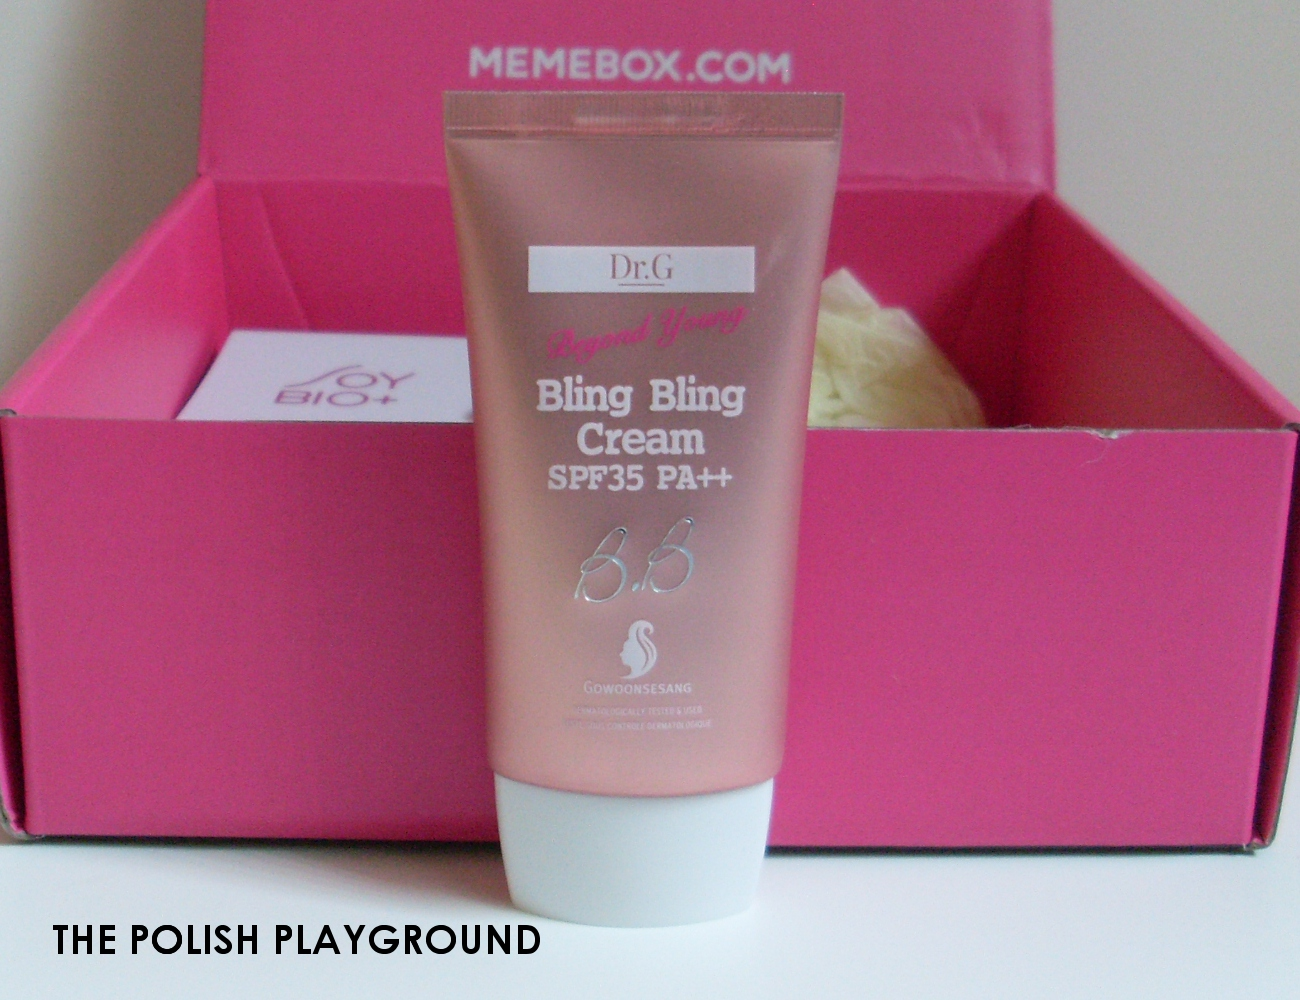 Memebox Luckybox #11 Unboxing - Dr.G Bling Bling Cream SPF35 PA++